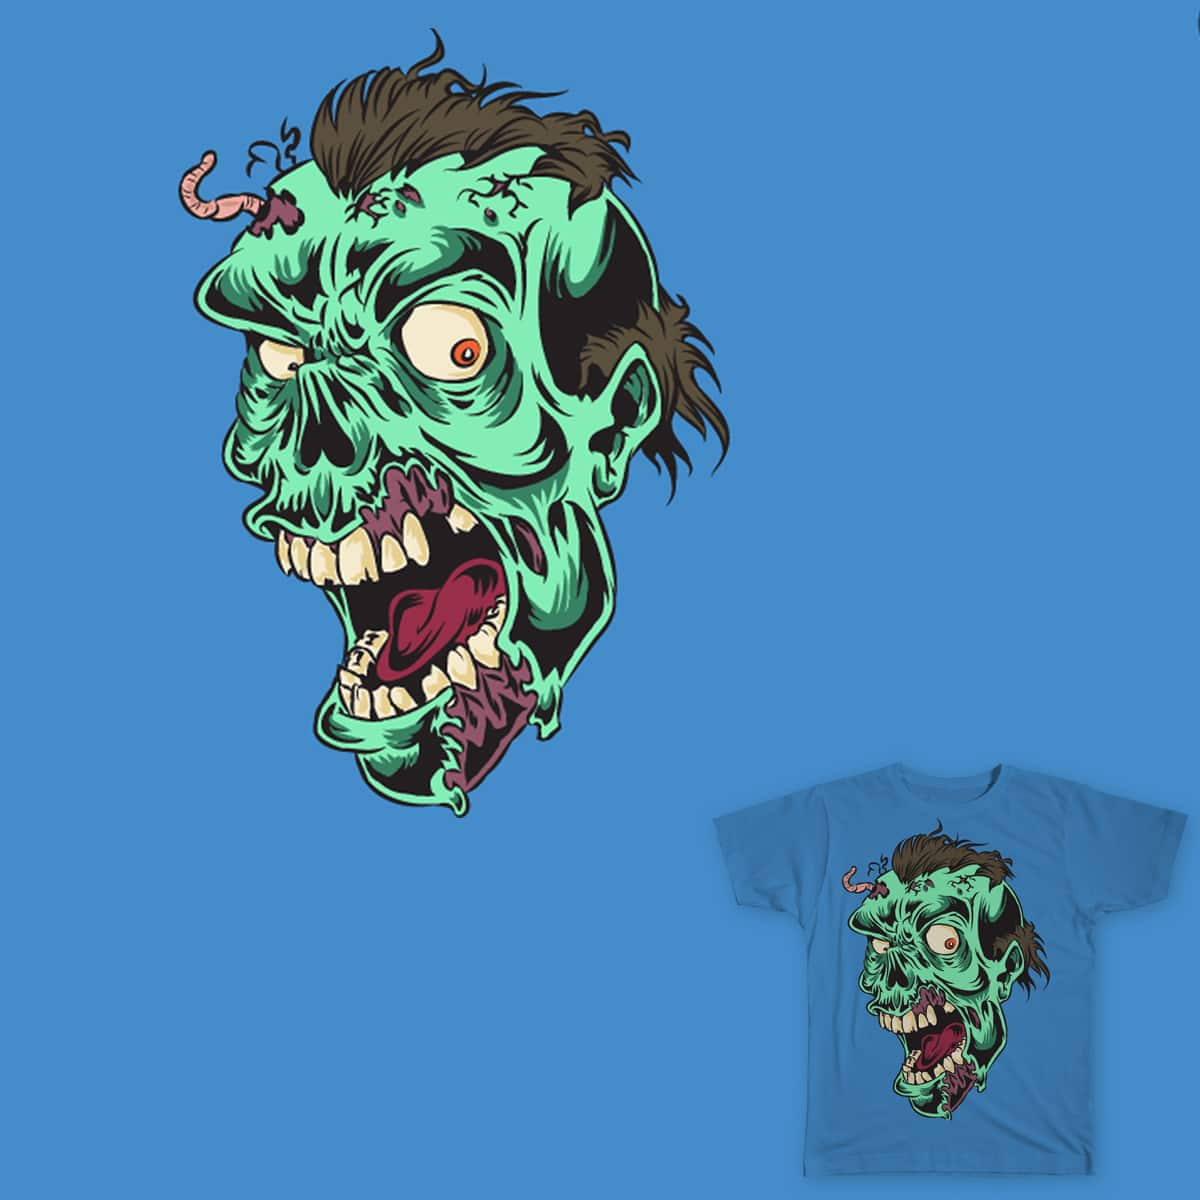 I'd rather be Undead by OhRawd on Threadless